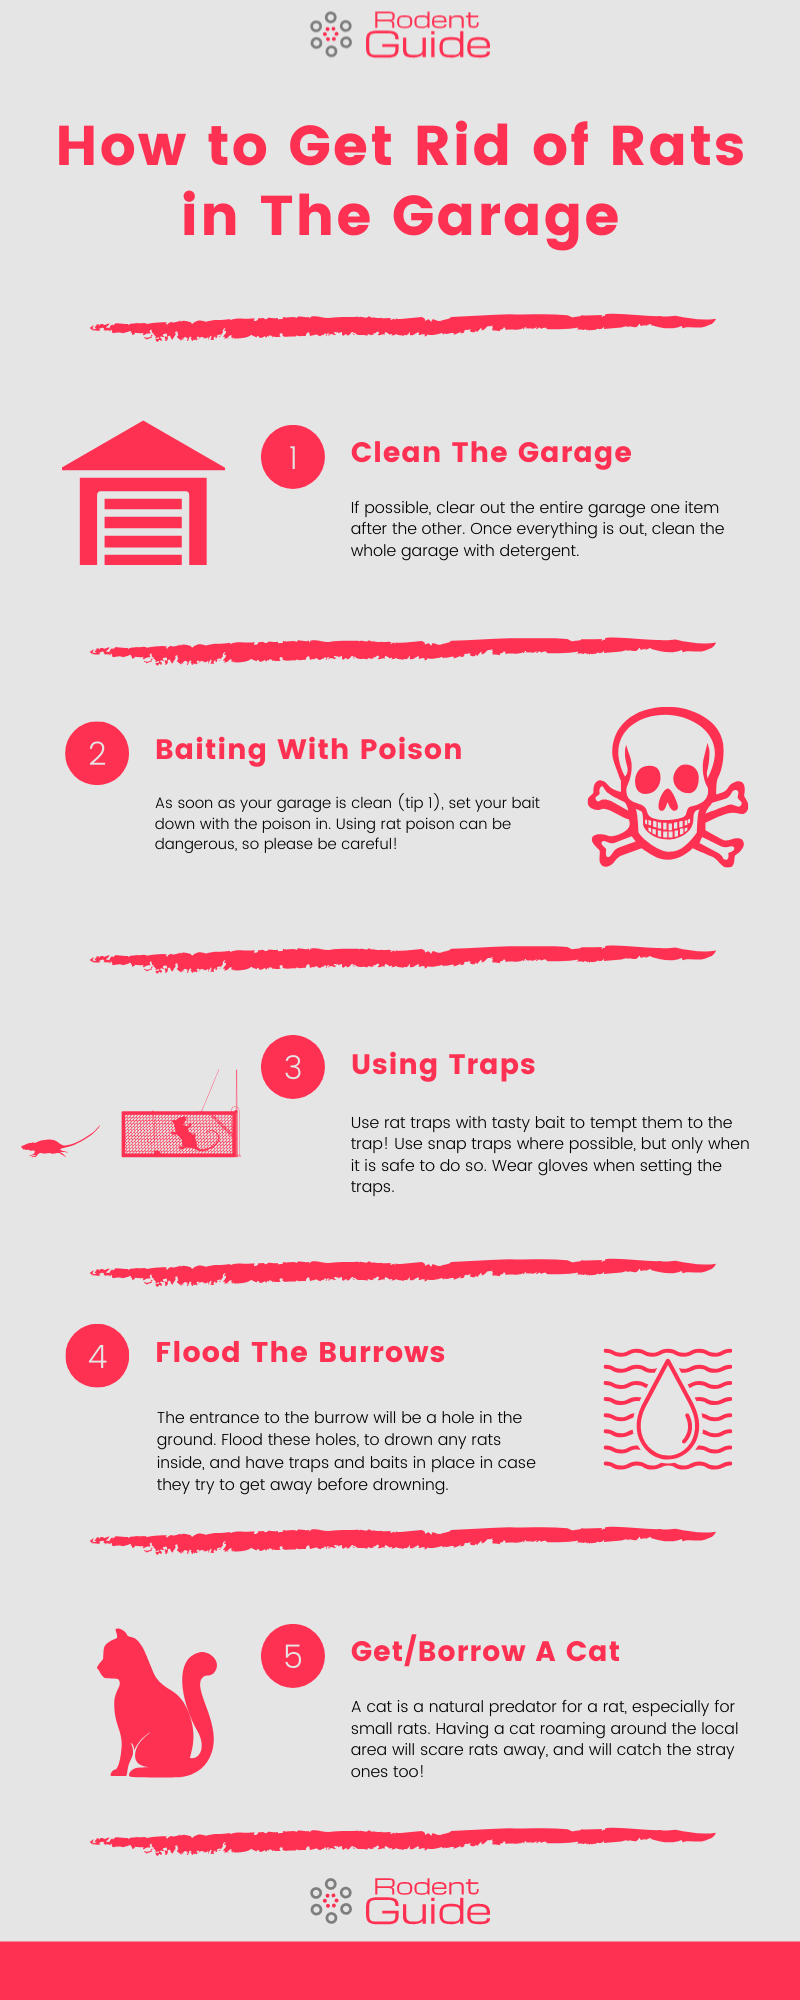 How to Get Rid of Rats in The Garage Infographic